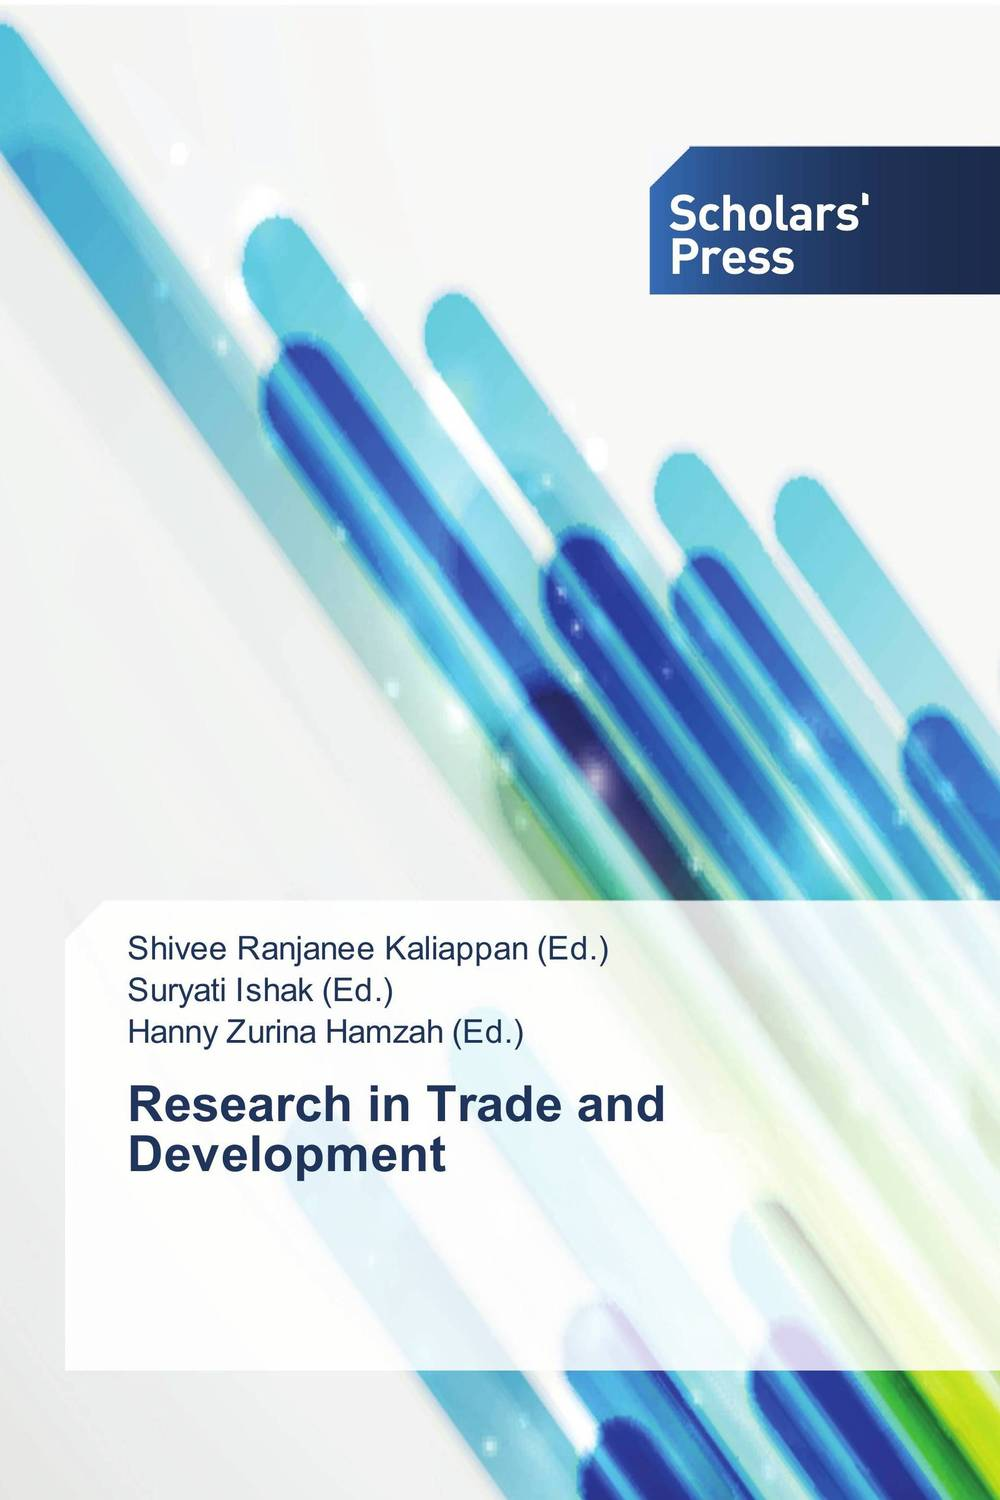 Research in Trade and Development буддийский сувенир sheng good research and development ssyf a19 10